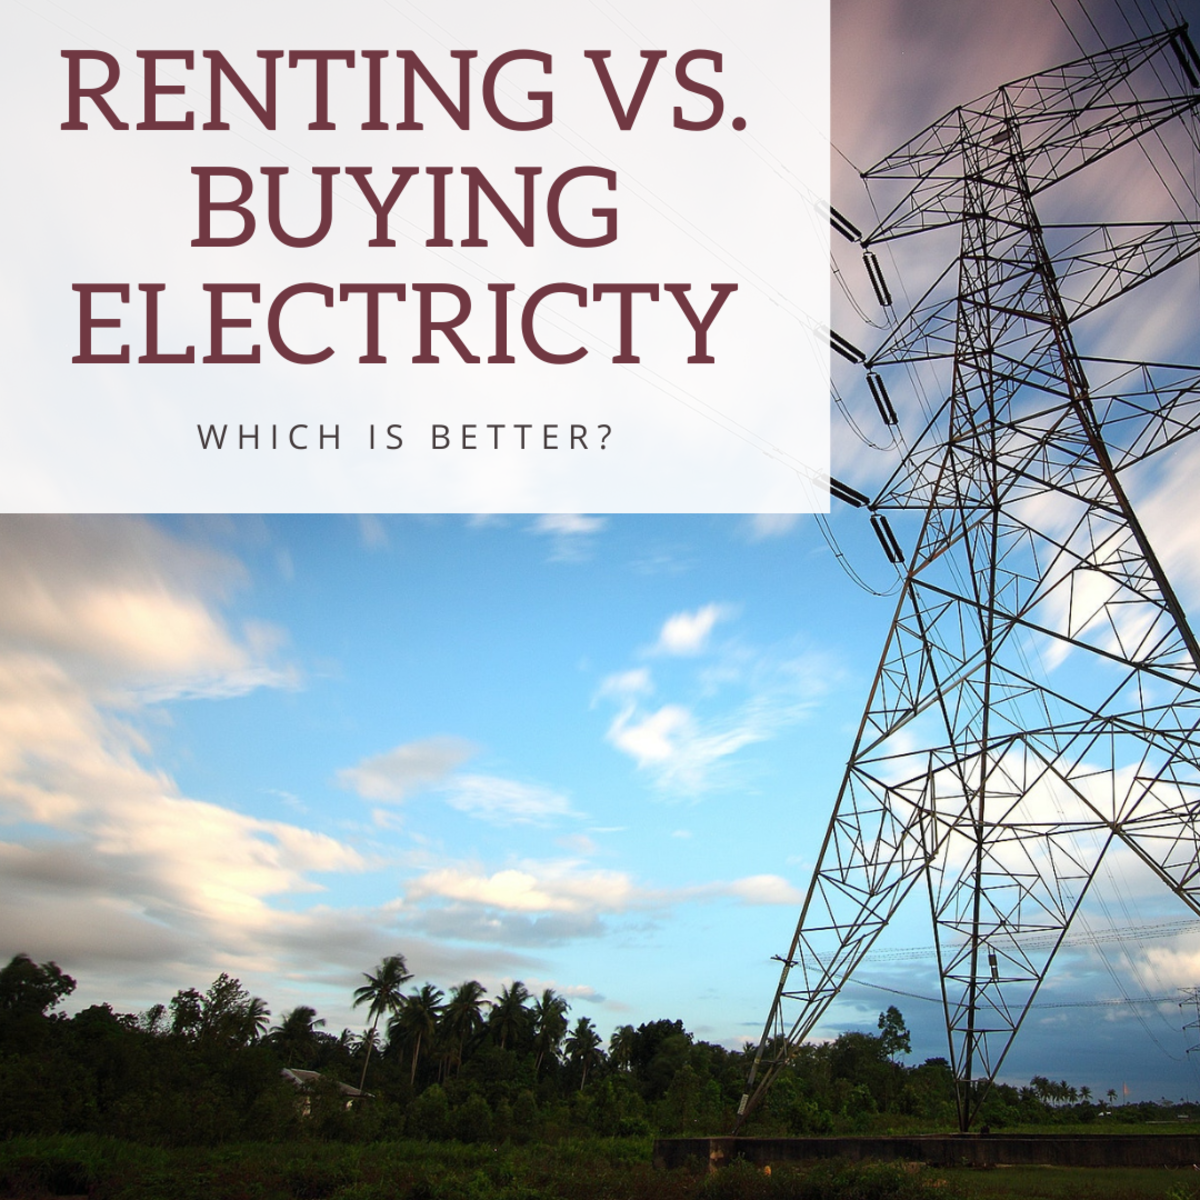 We've all heard the popular belief that buying is usually better than renting, whether it be a home, a car, or otherwise. Could this apply to electricity as well?